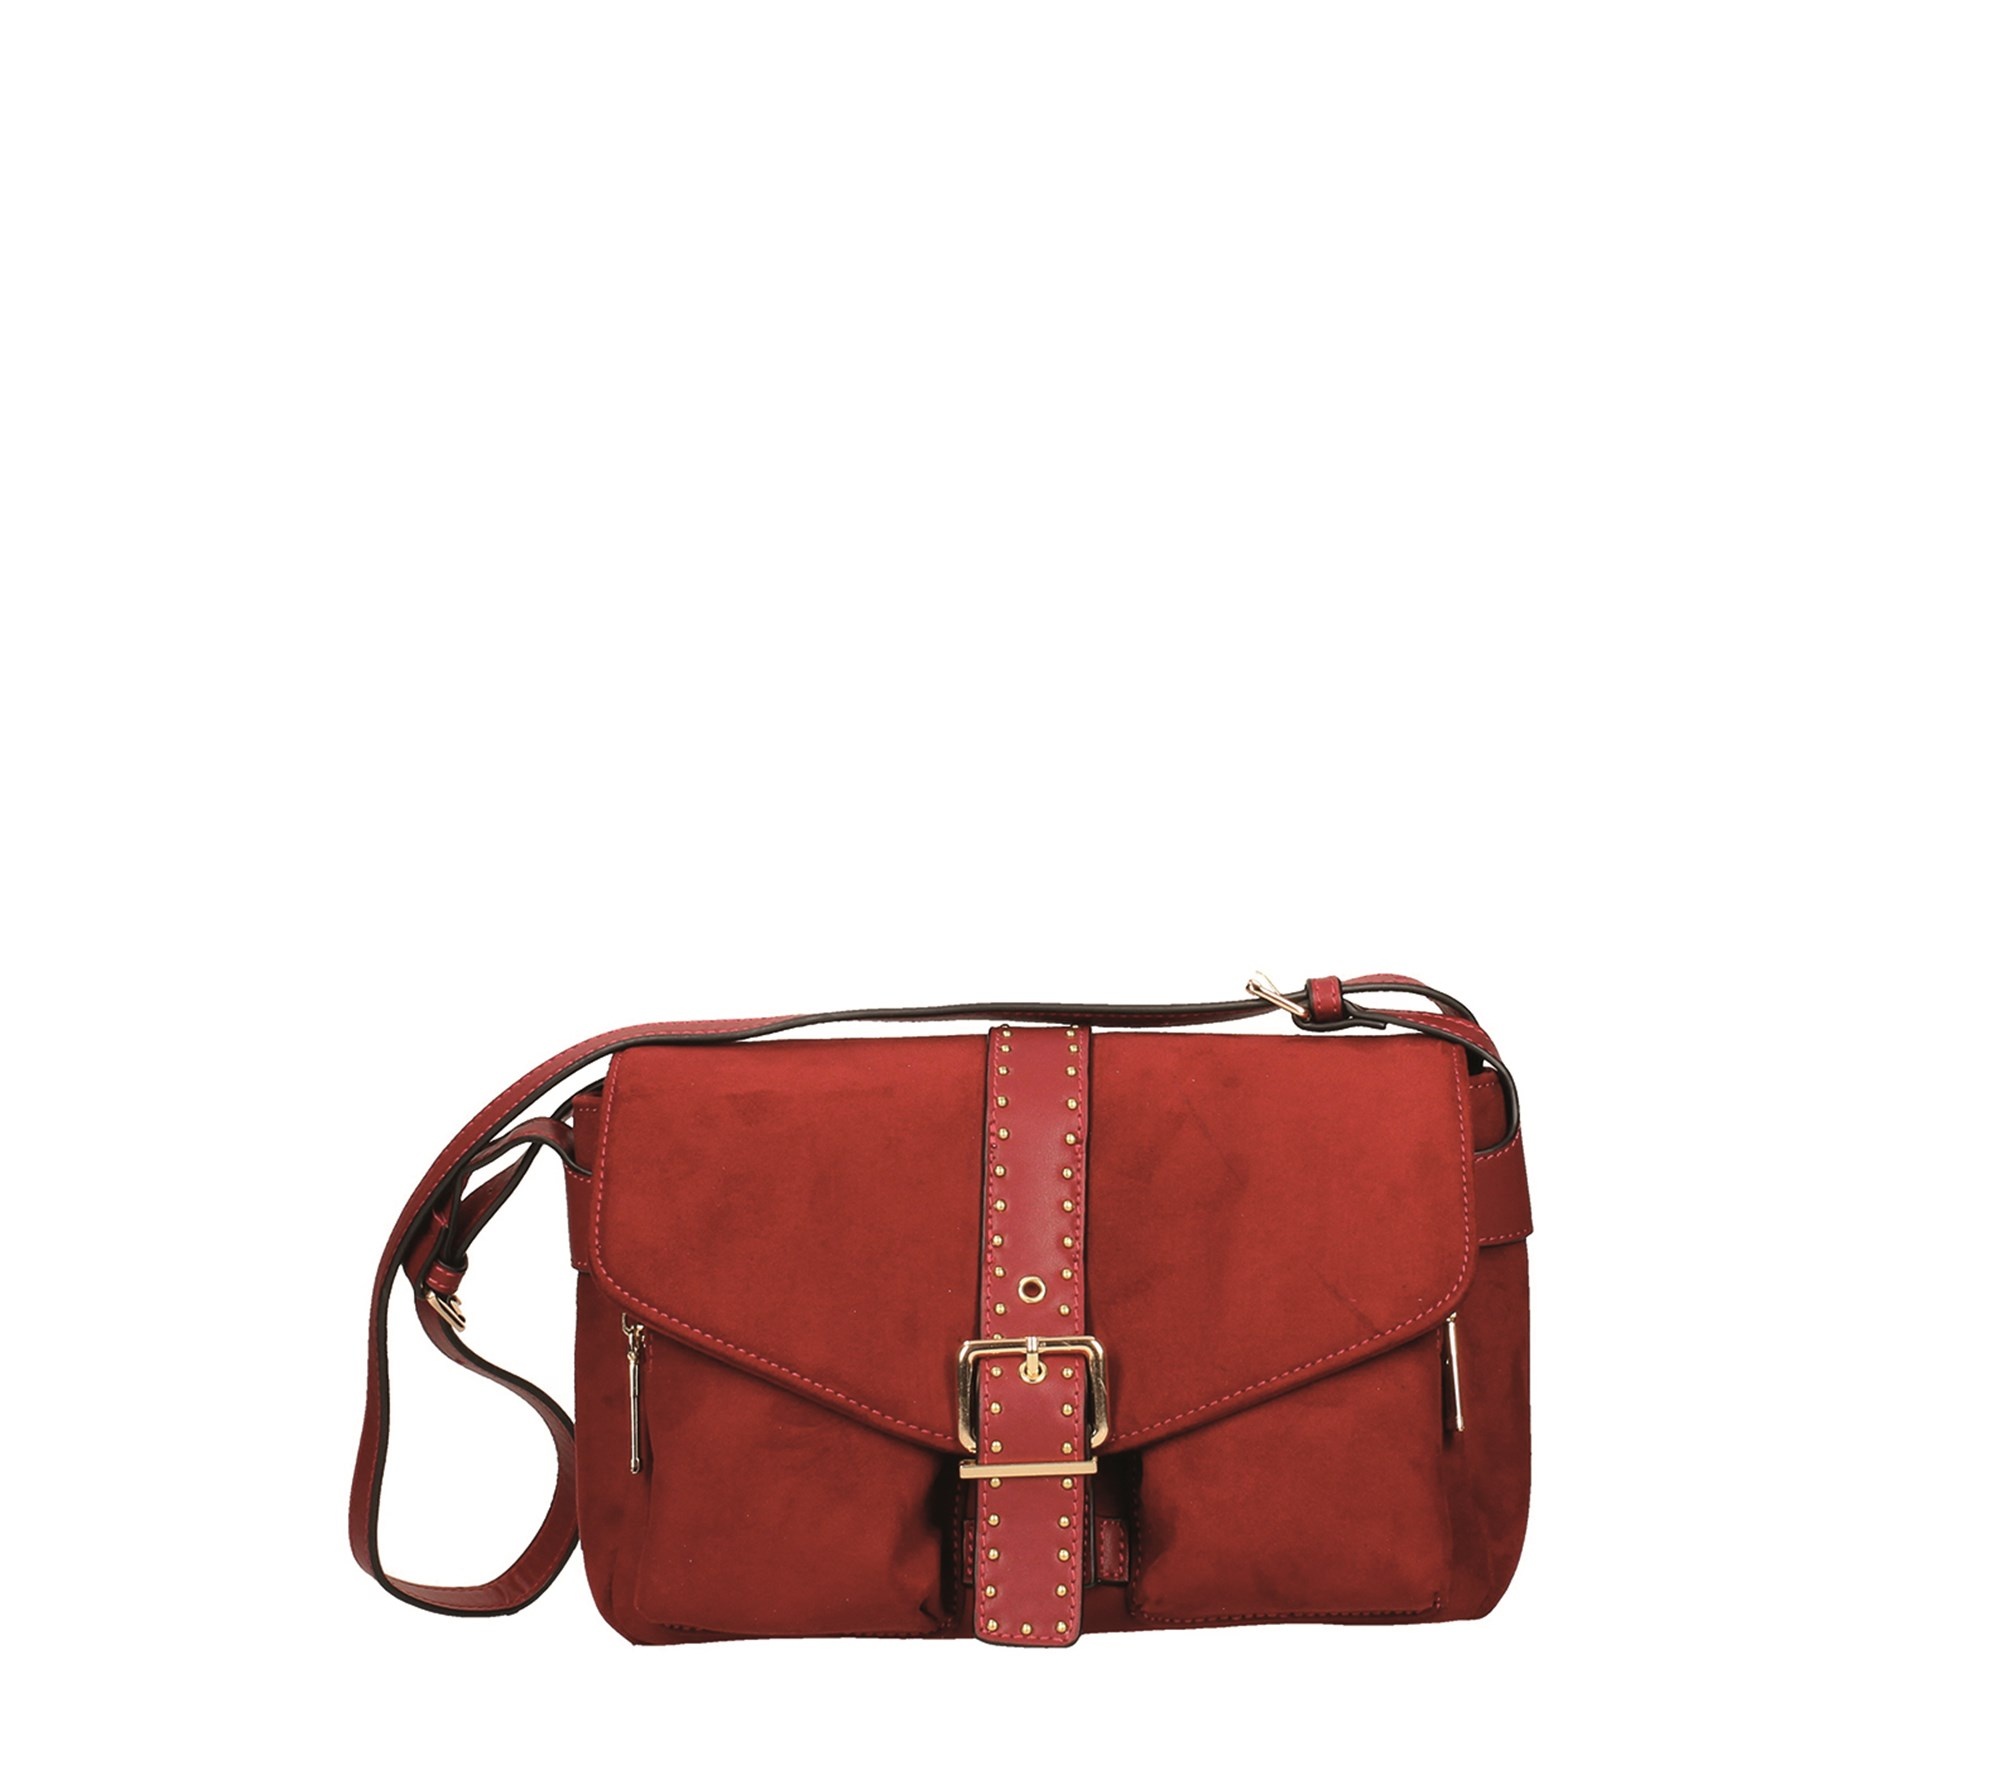 Tata Italia Accessories Woman Bags 8TEEN II